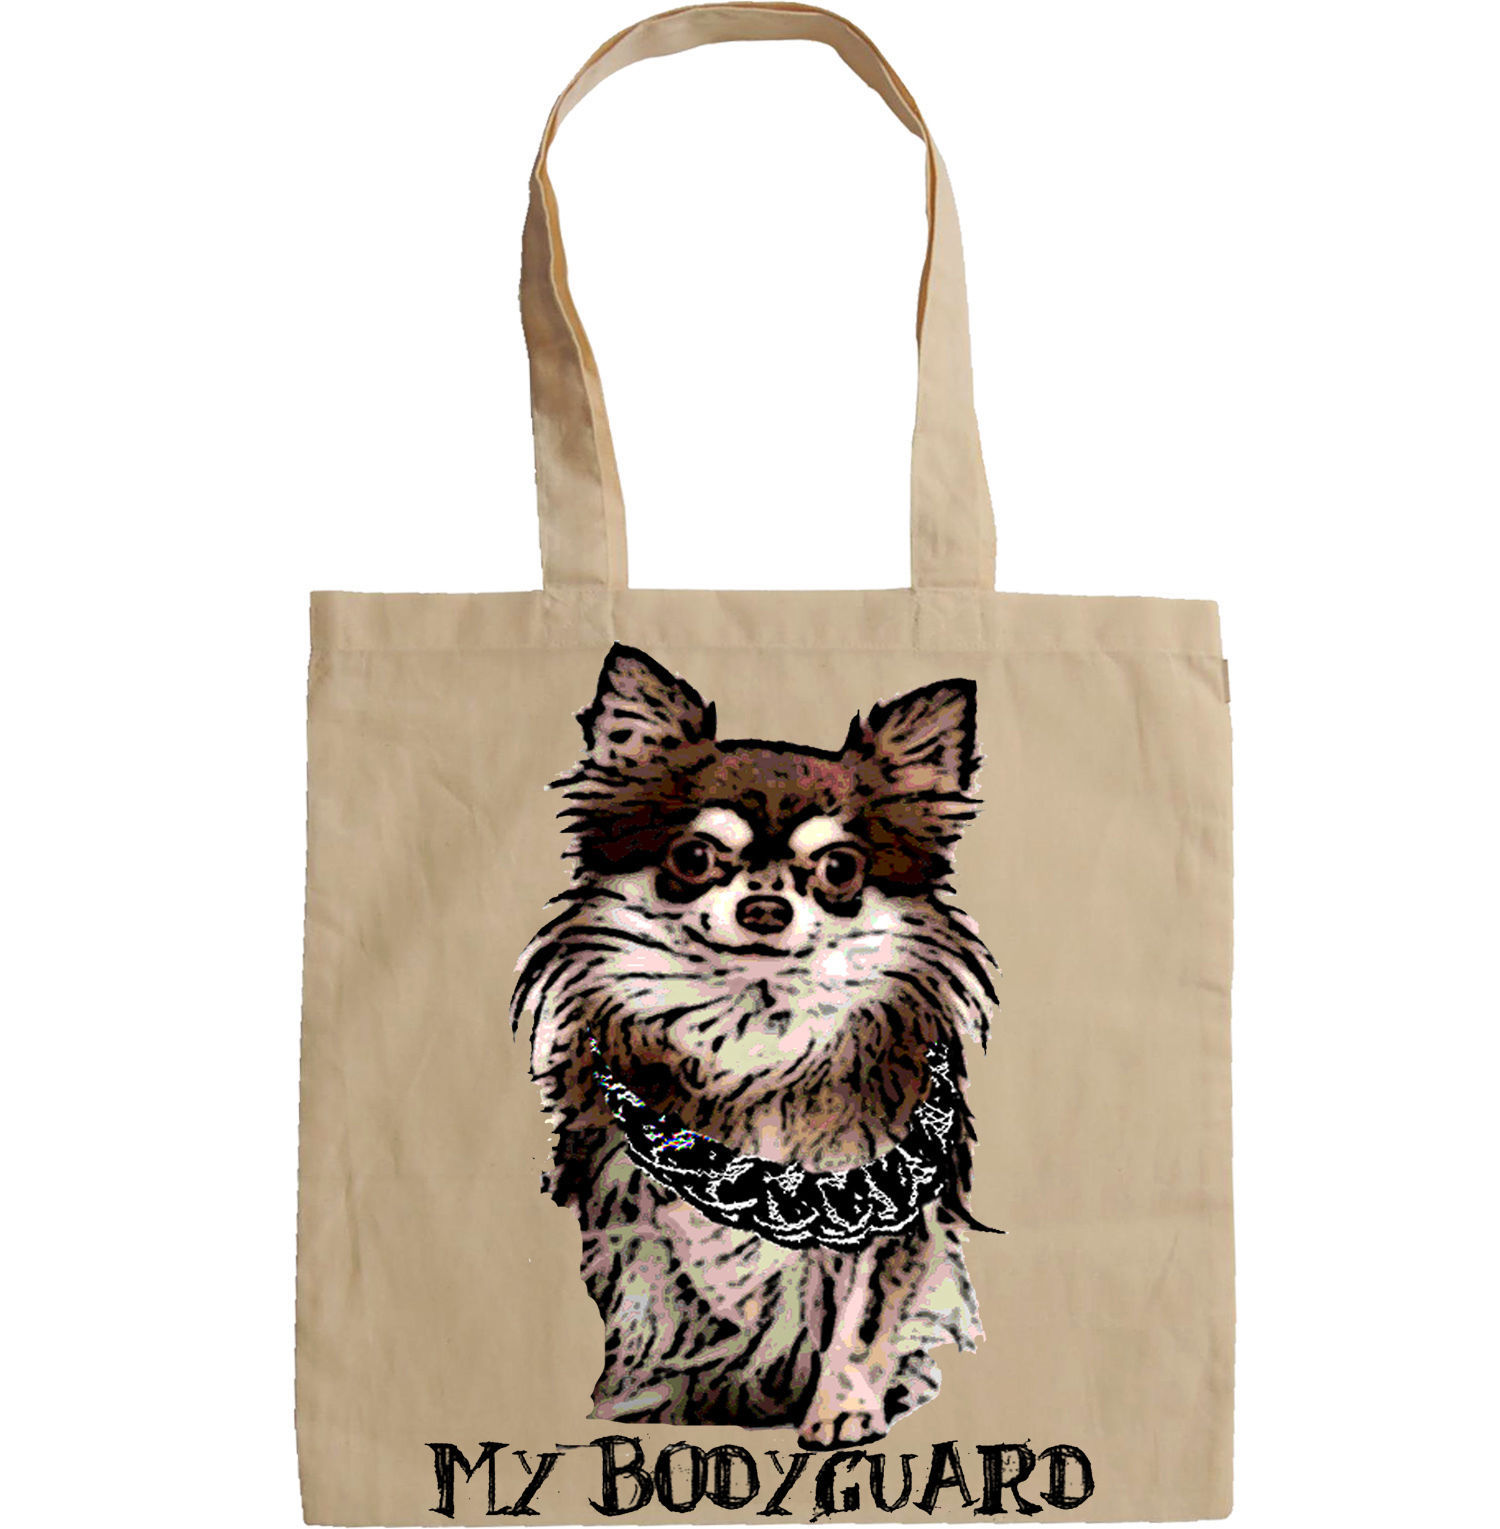 CHIHUAHUA  MY BODYGUARD 3  -  NEW AMAZING GRAPHIC HAND BAG/TOTE BAG